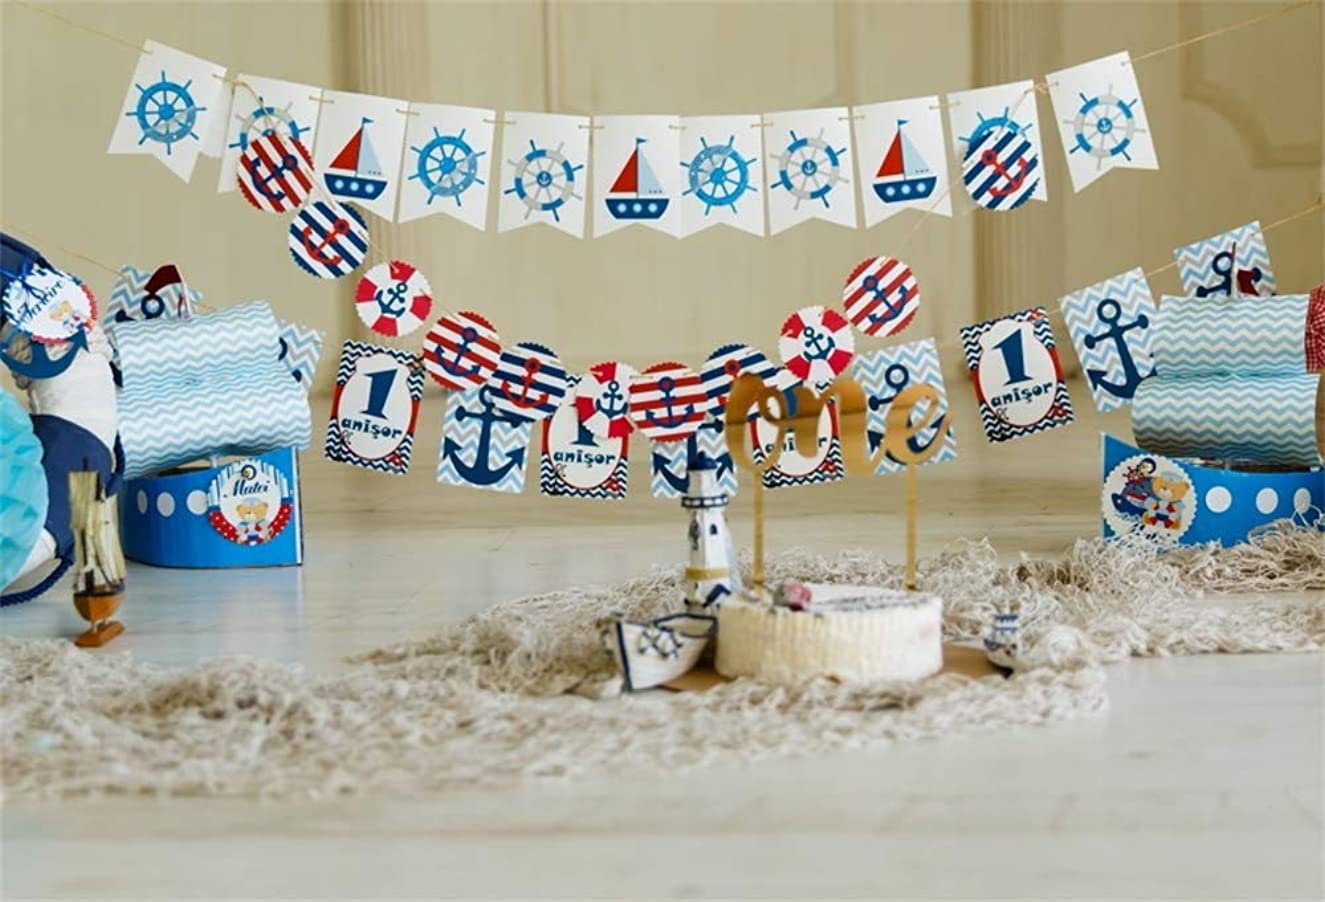 AOFOTO 5x3ft Polyester 1st Birthday Backdrop Pirate Buntings Ships Cake Carpet Boy Baby Little Prince Happy First Birthday Photography Background Room Interior Decoration Photo Backcloth Screen